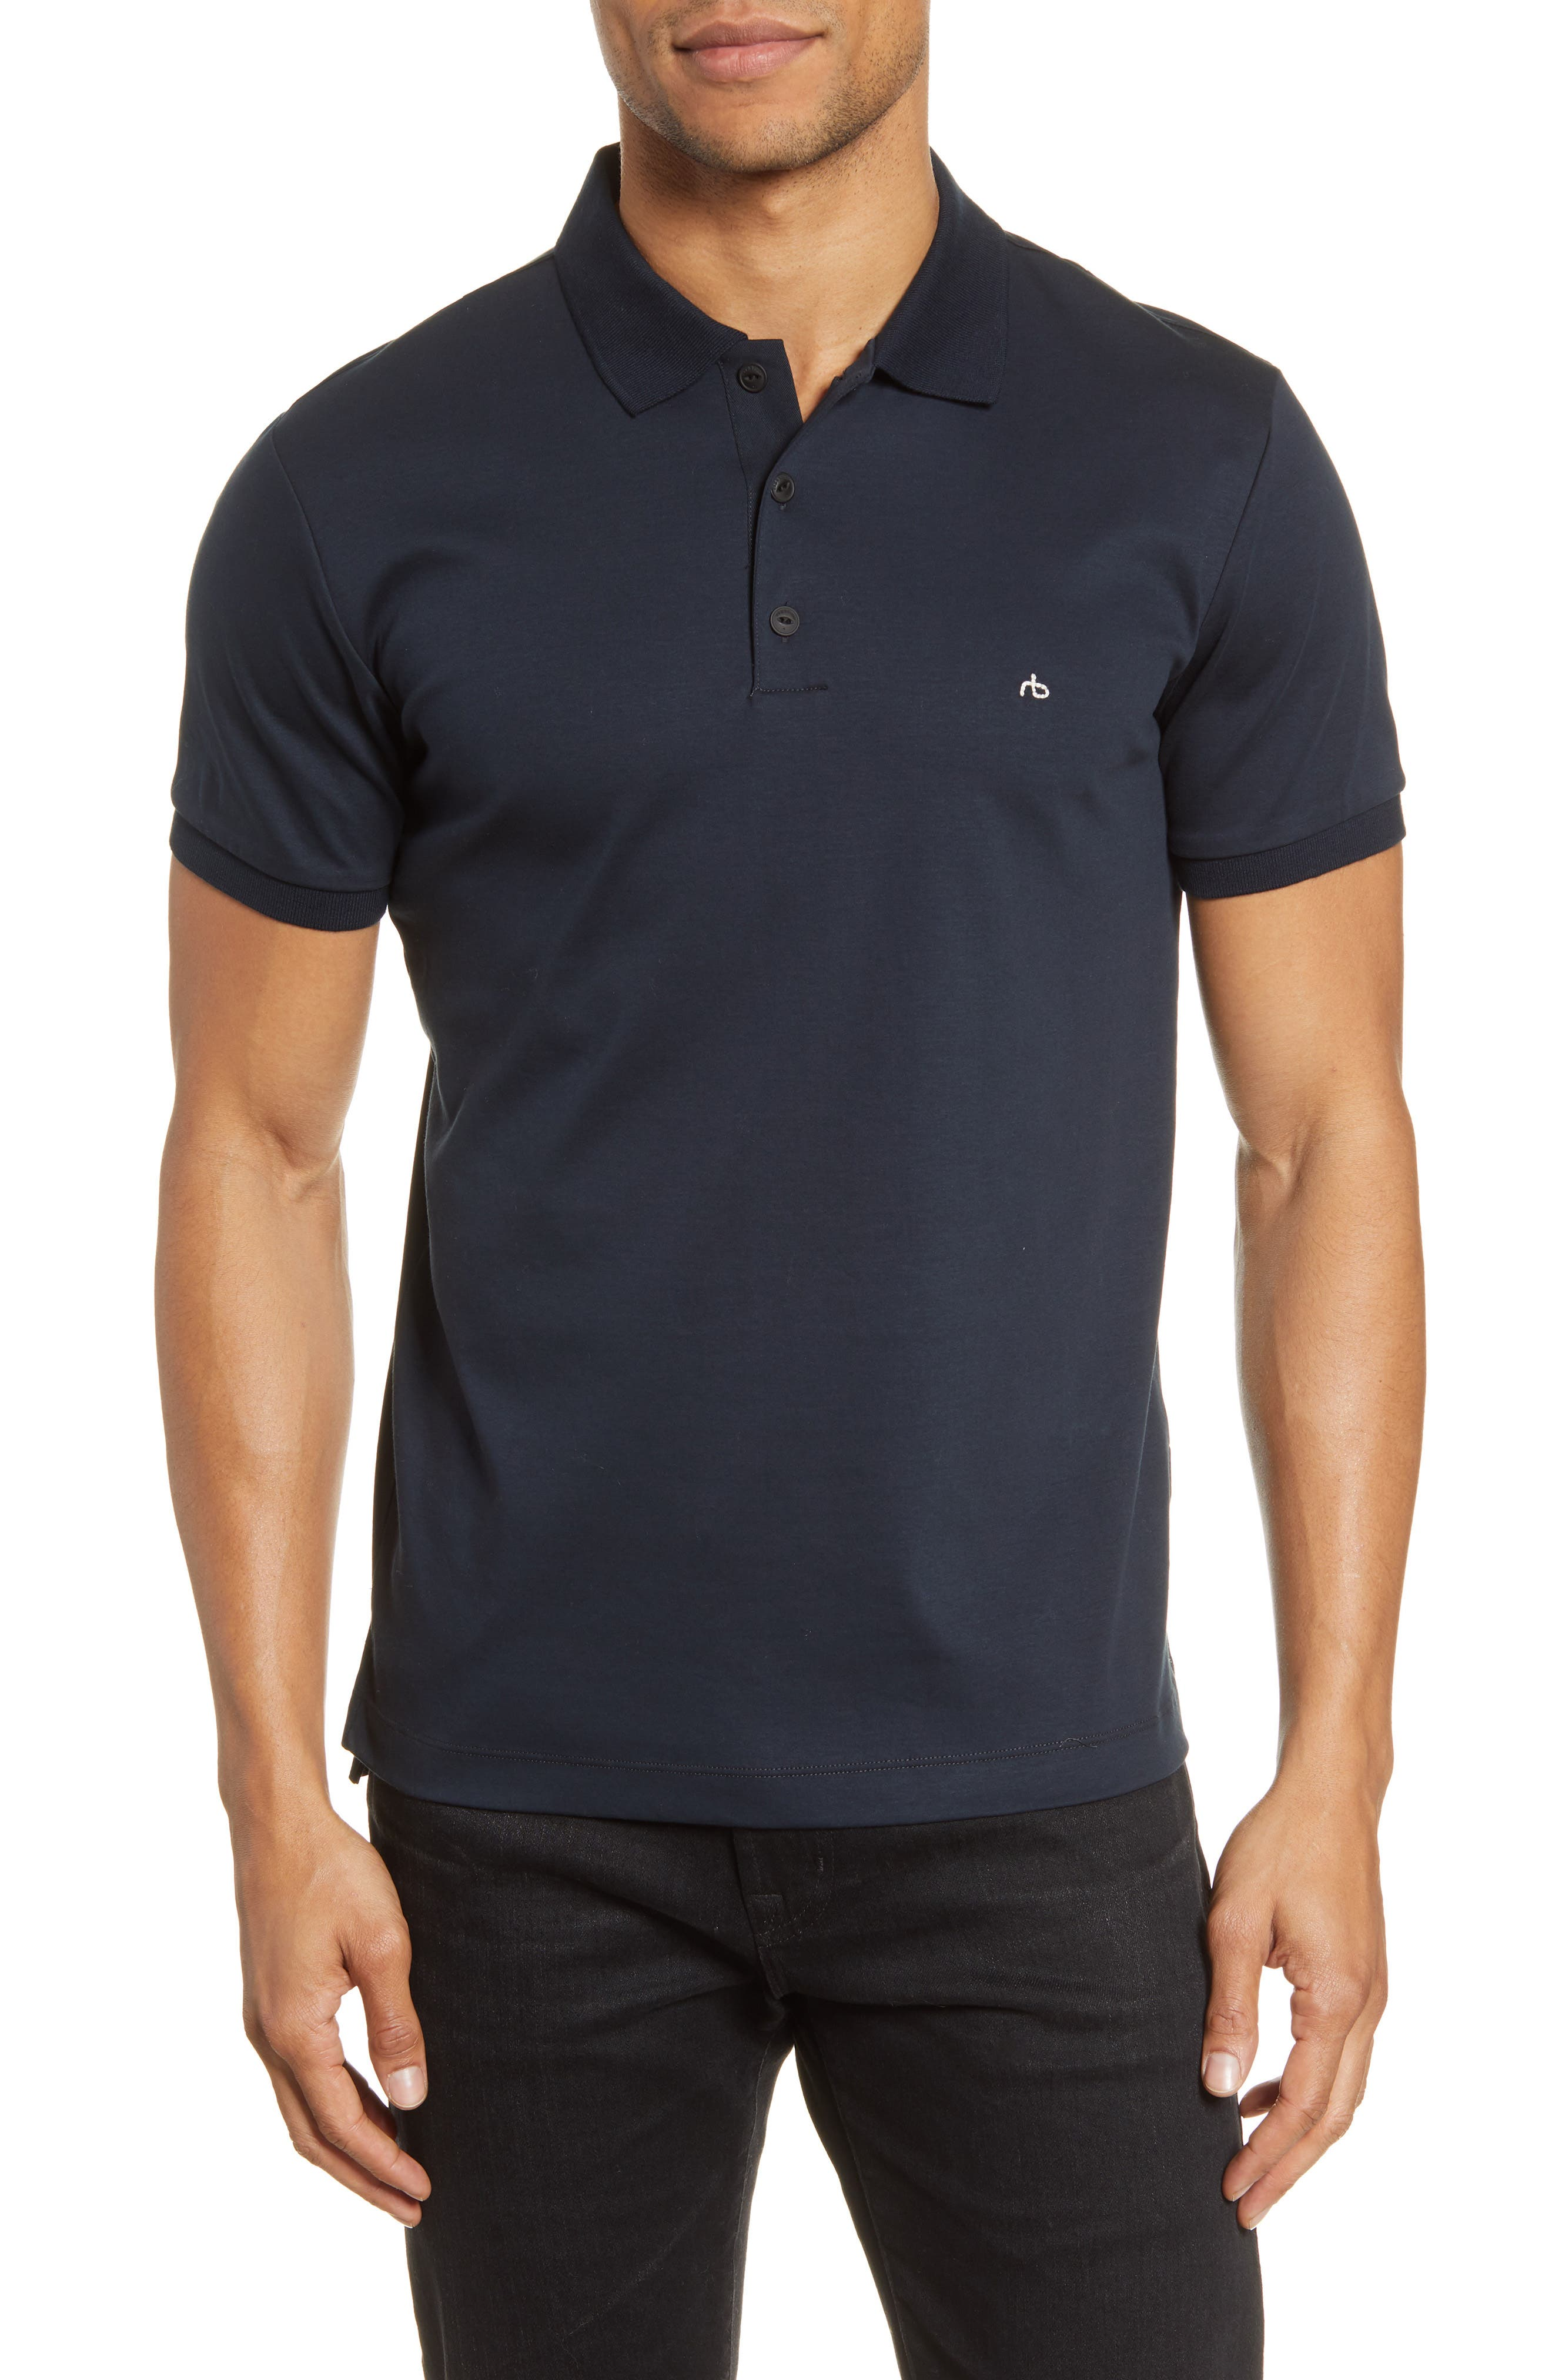 Men's Slim Fit Polo Shirts   Nordstrom